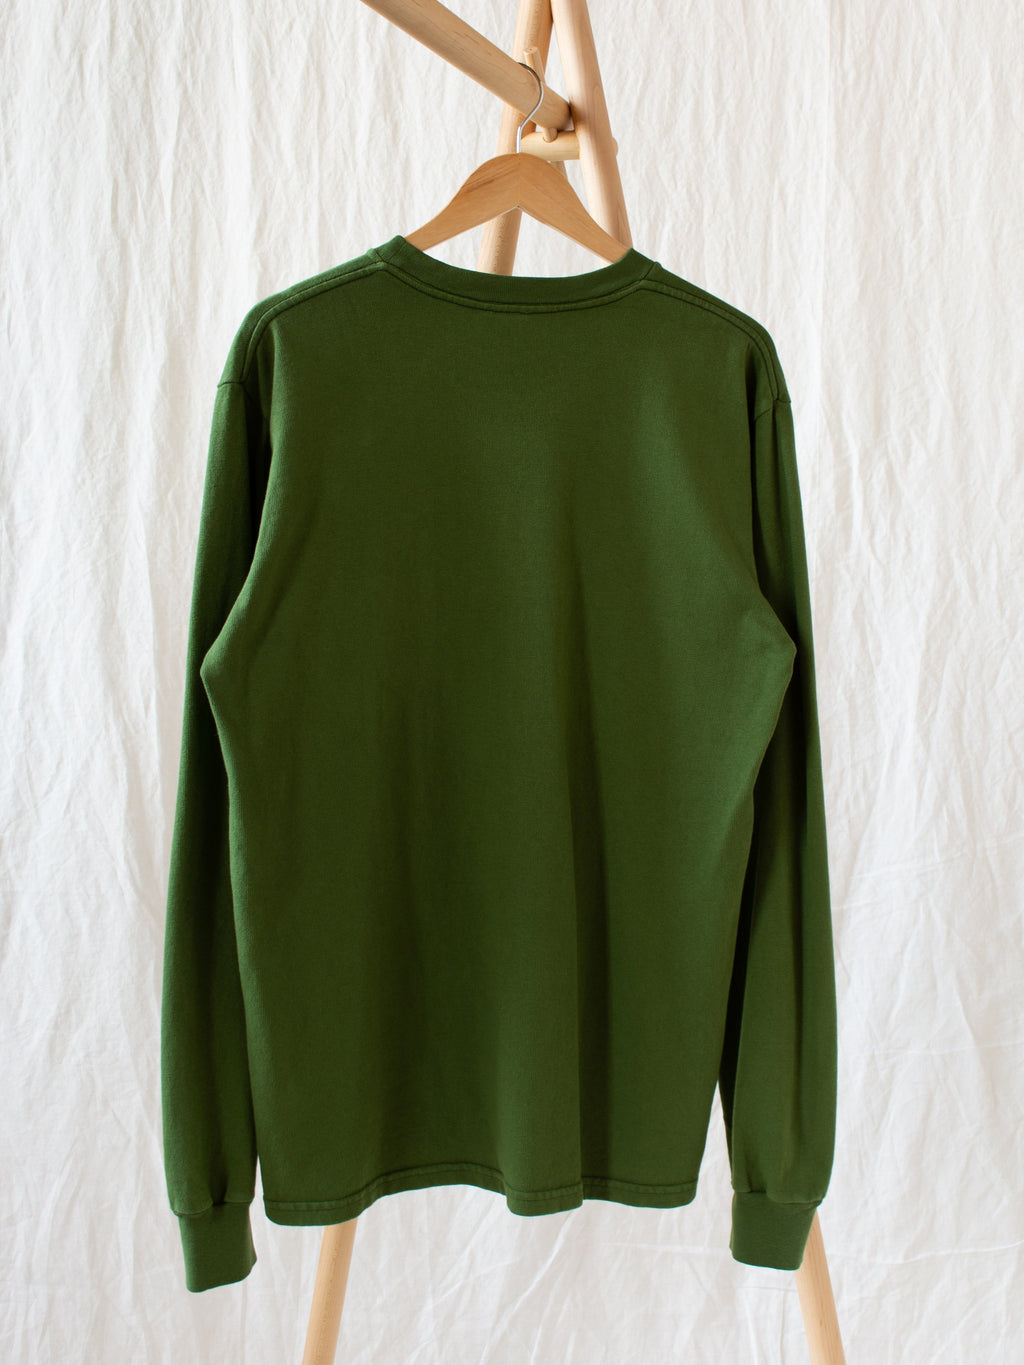 Namu Shop - paa LS Pocket Tee - Moss